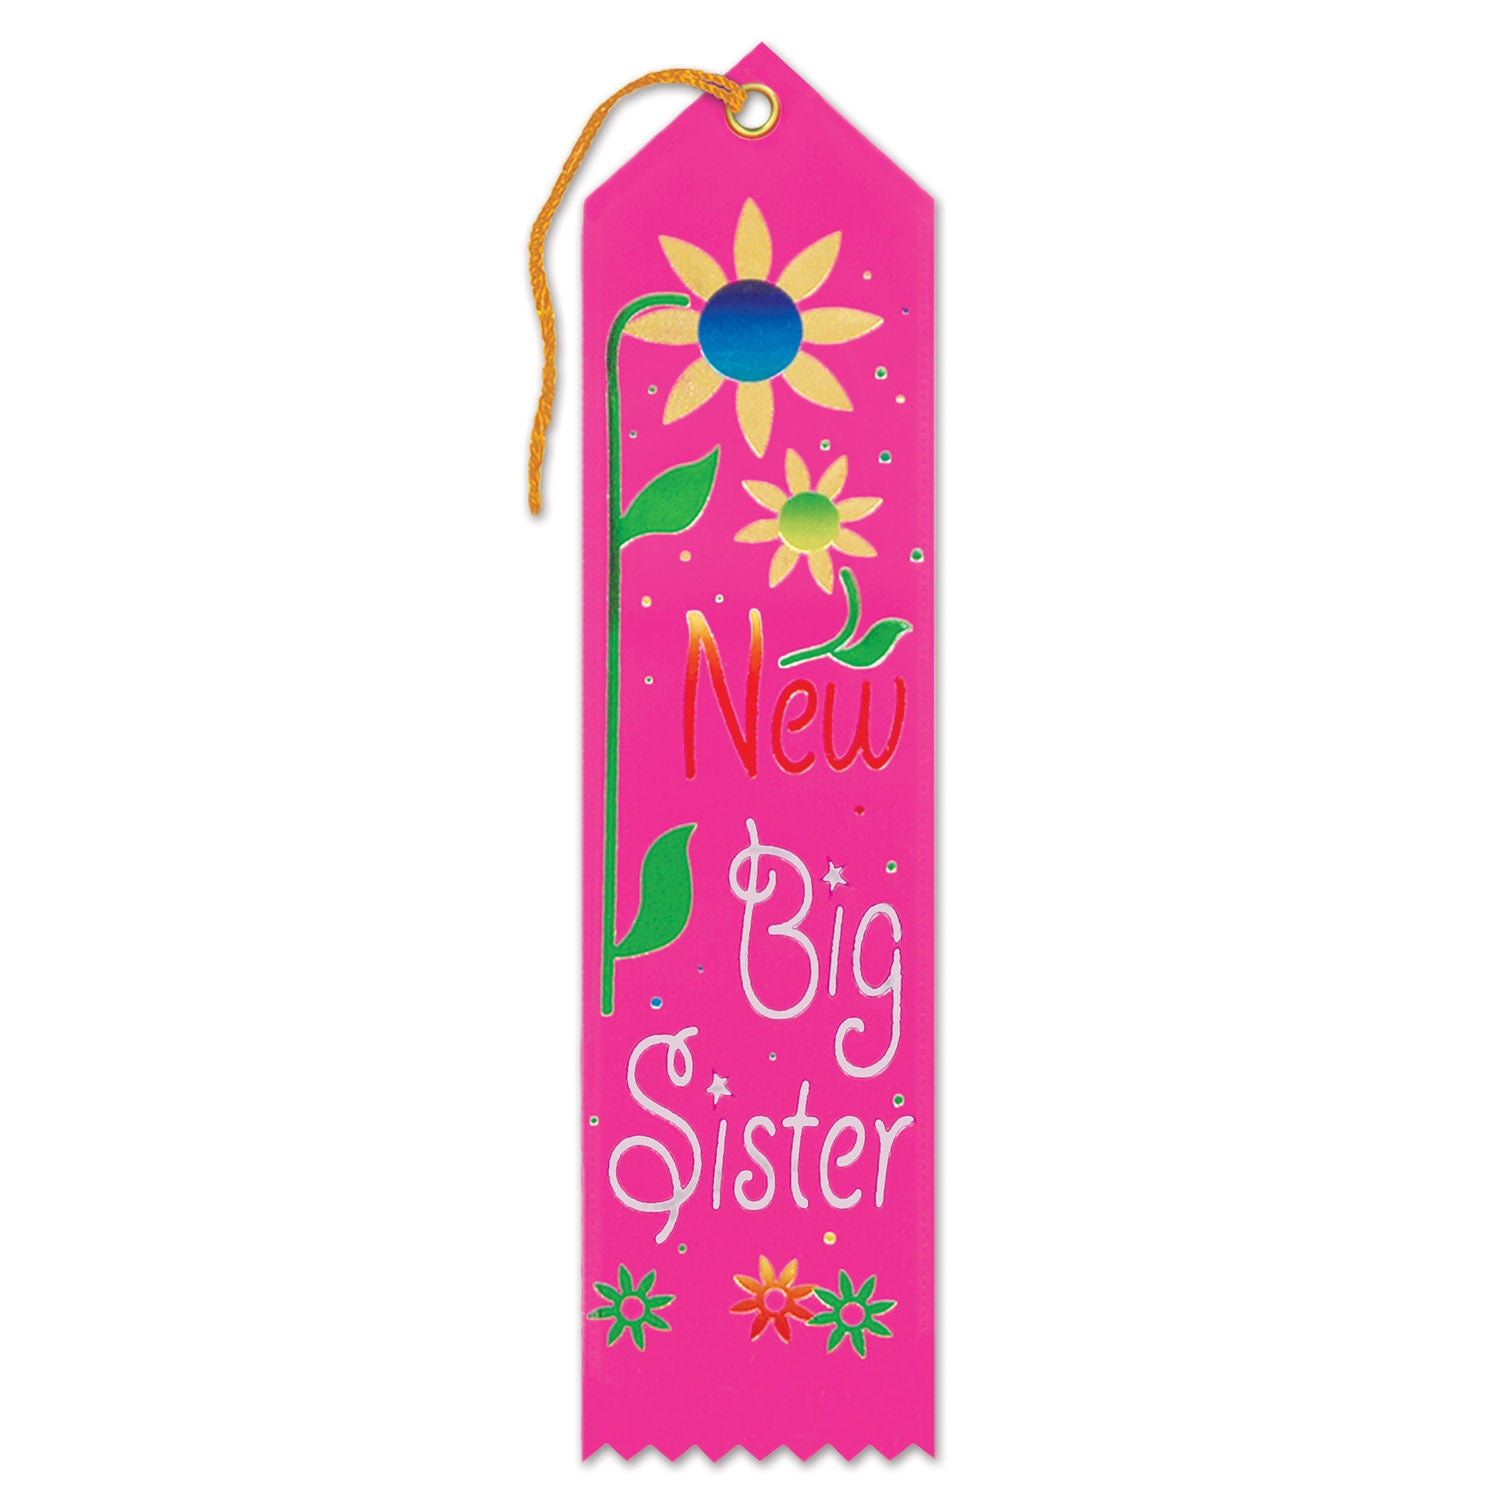 Case Of 6 Beistle New Big Sister Award Ribbon